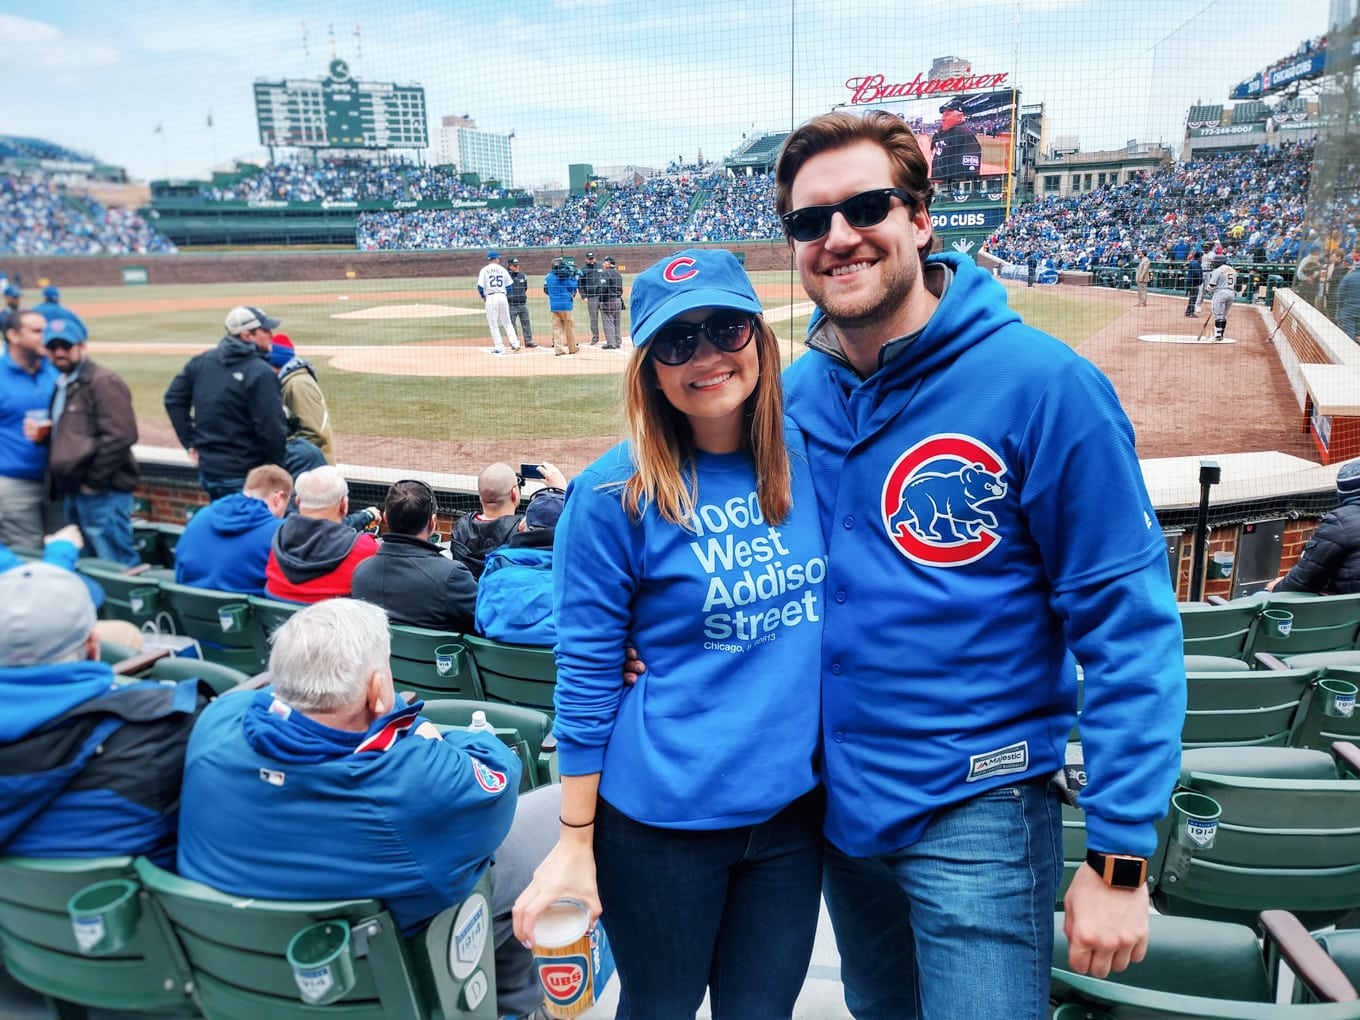 Lake shore lady at Cubs Home Opener with the Moto z2 Force!